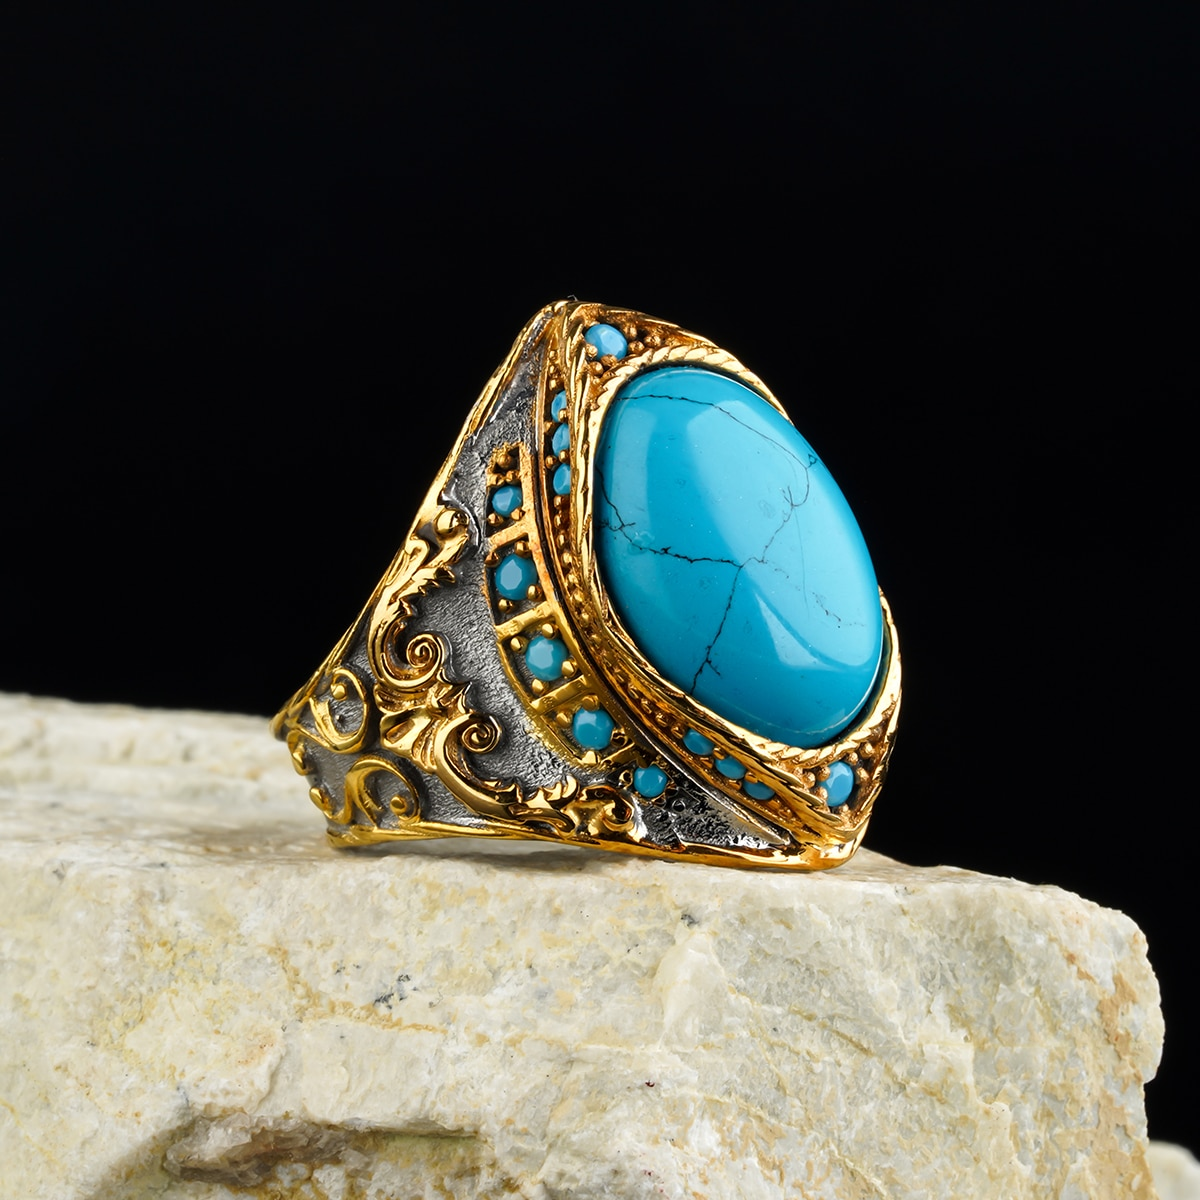 Custom Jewelry Guaranteed High-quality 925 Sterling Silver Zircon, Firuz ,Tauus Stone Rings in a luxurious way for men with gift